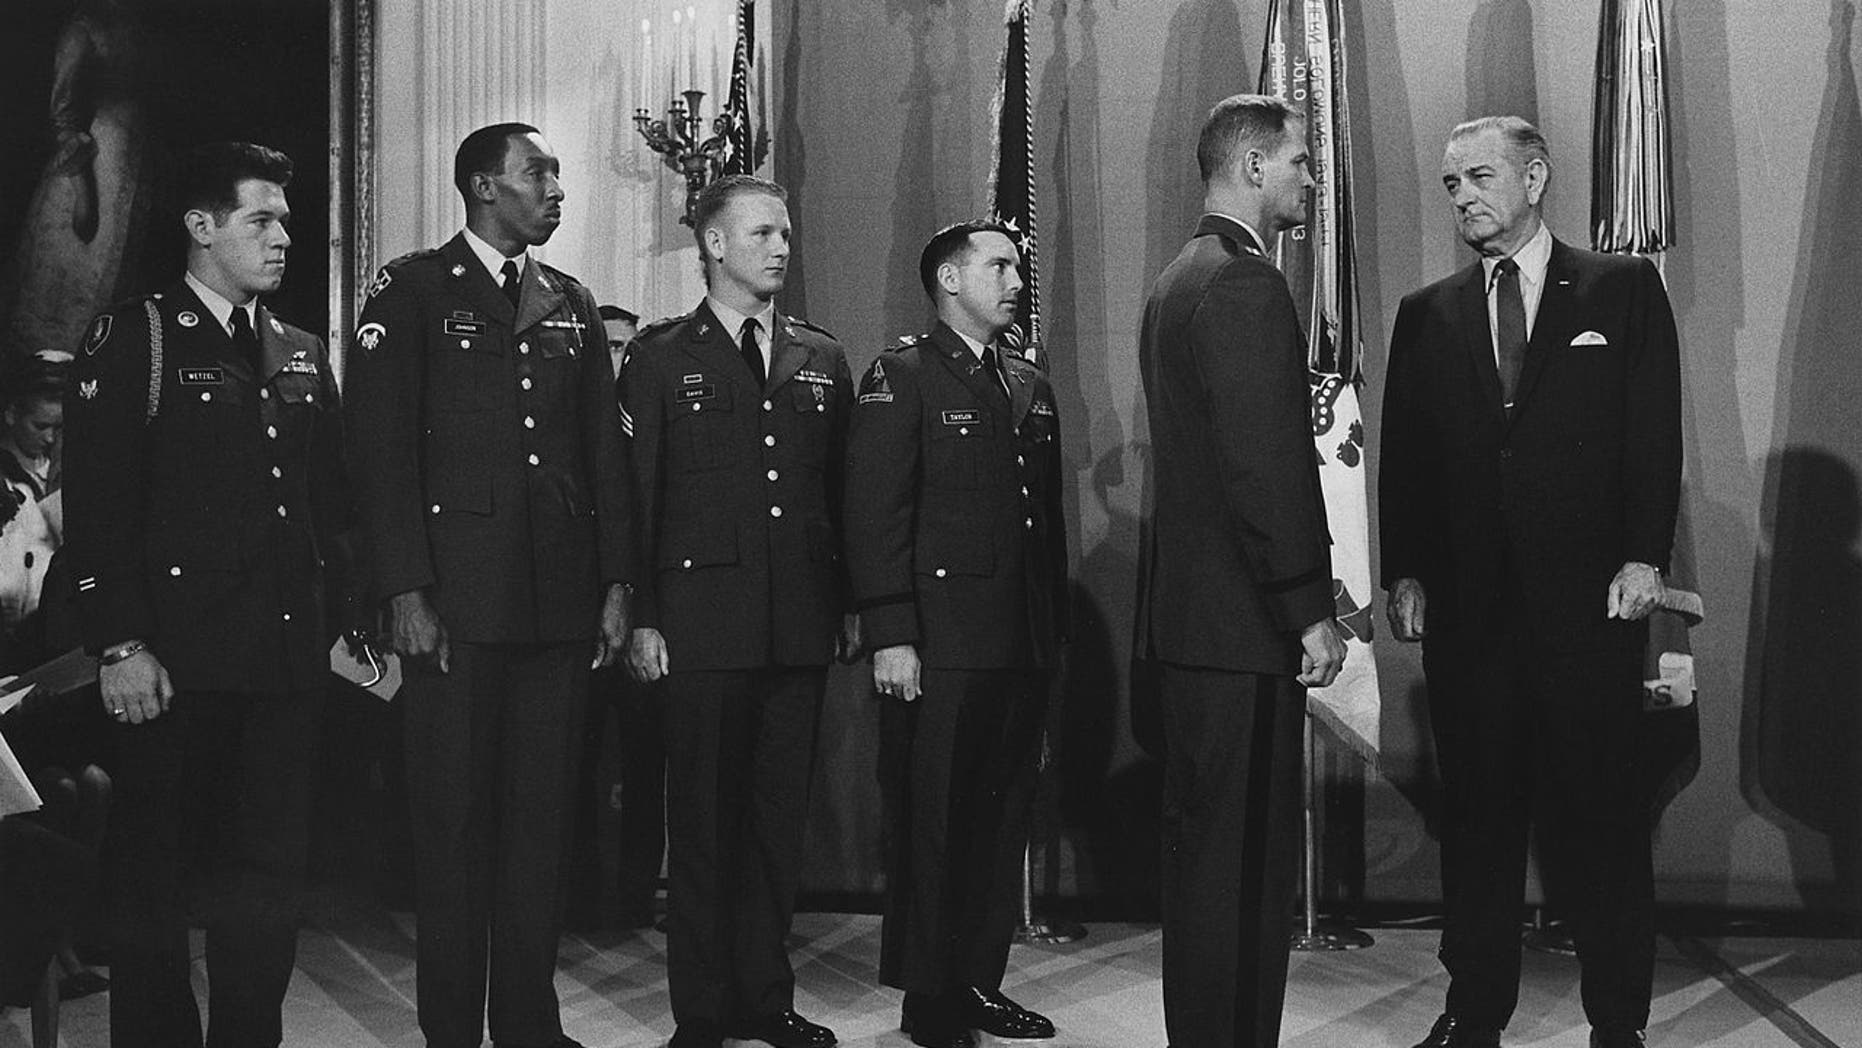 Maj. James Allen Taylor waiting to get his Medal of Honor from President Johnson